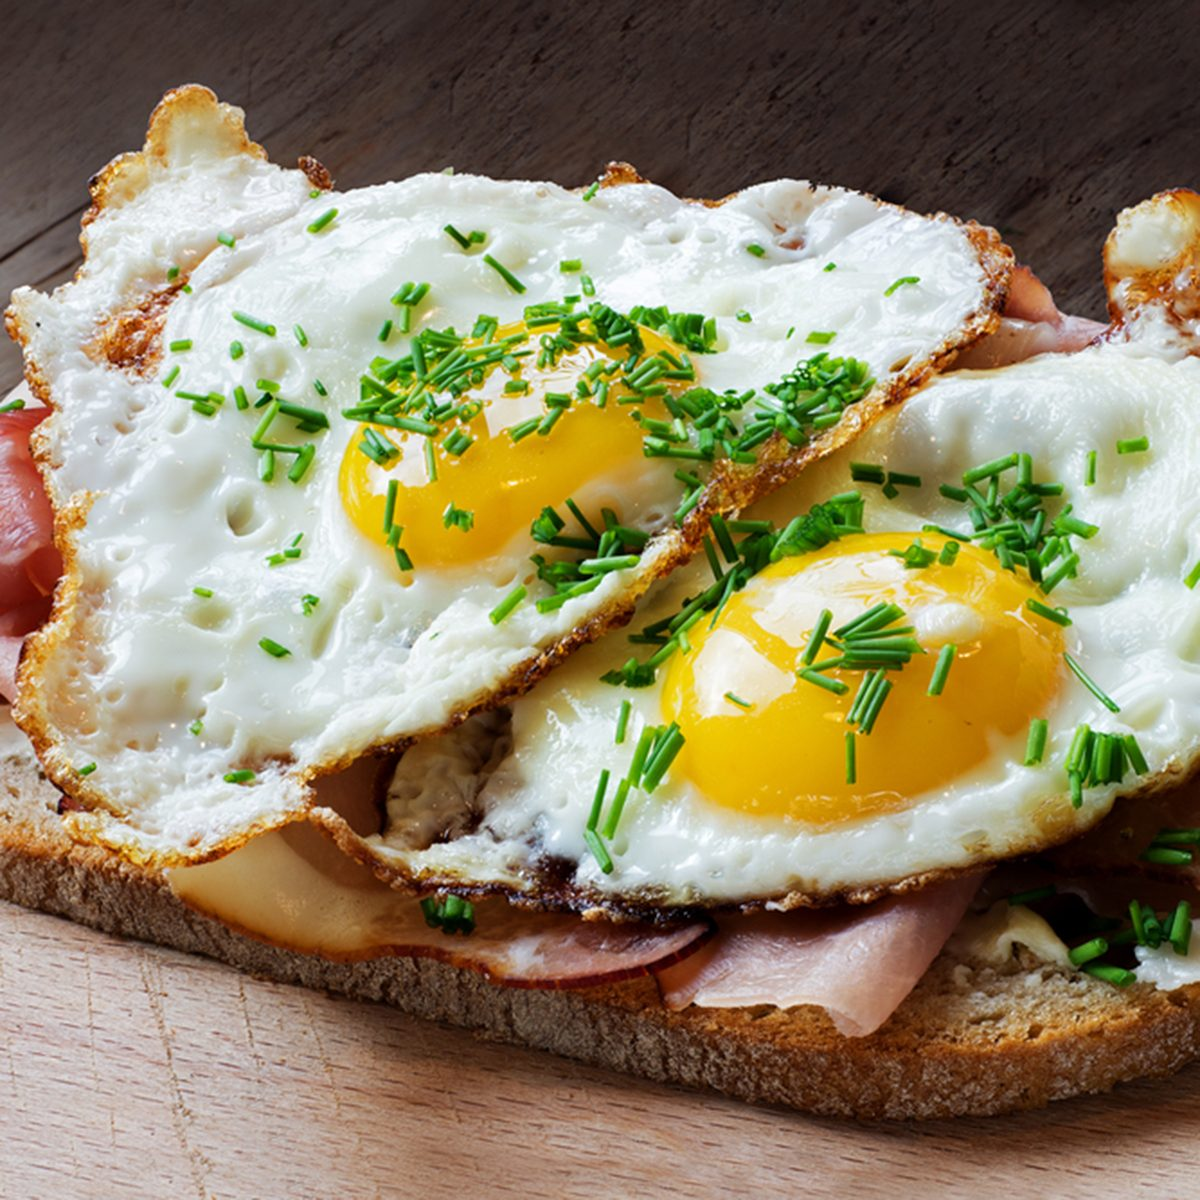 Slice of rustic bread with ham or bacon and fried egg